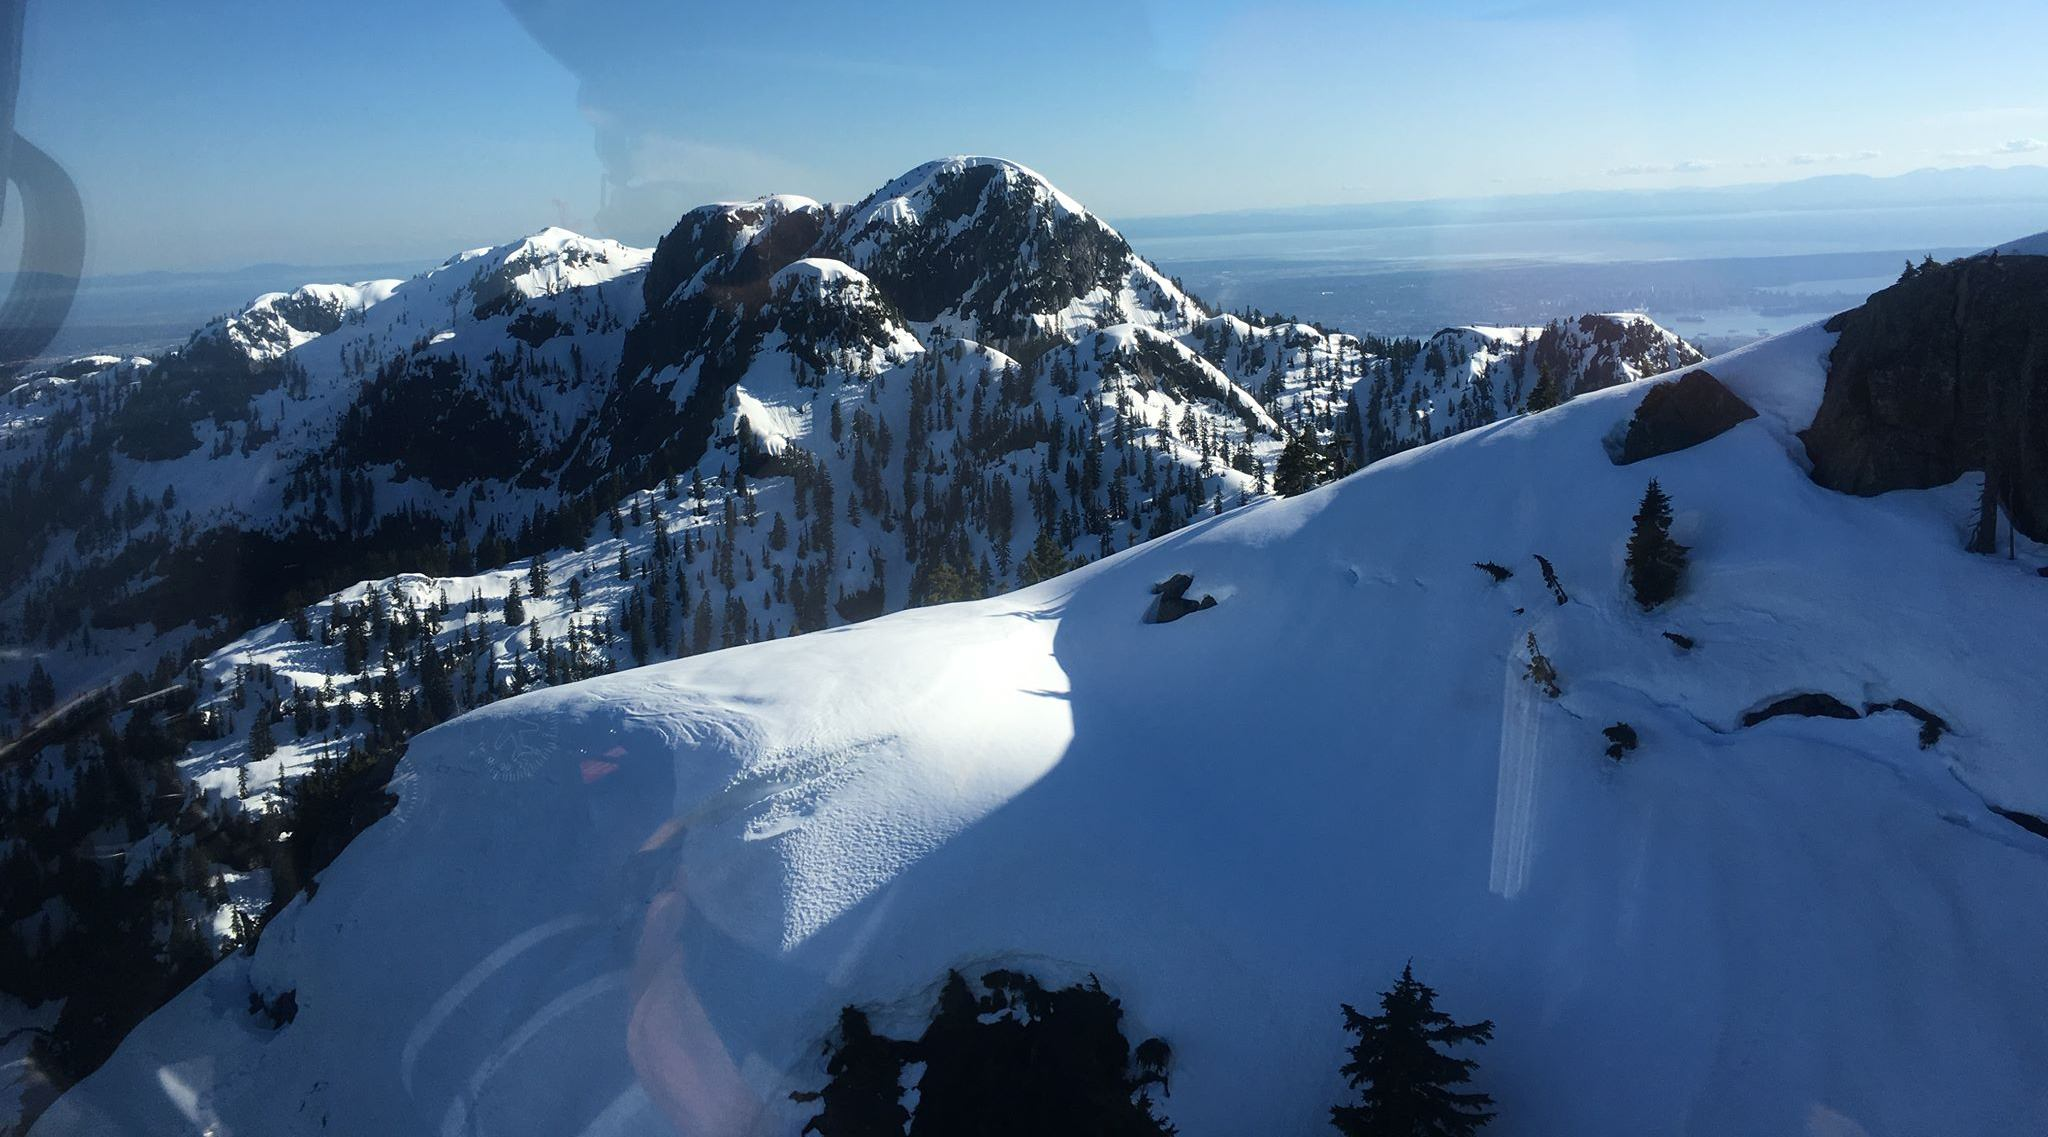 The view from the NSR helicopter during their rescue on Mt. Seymour (North Shore Rescue/Facebook)